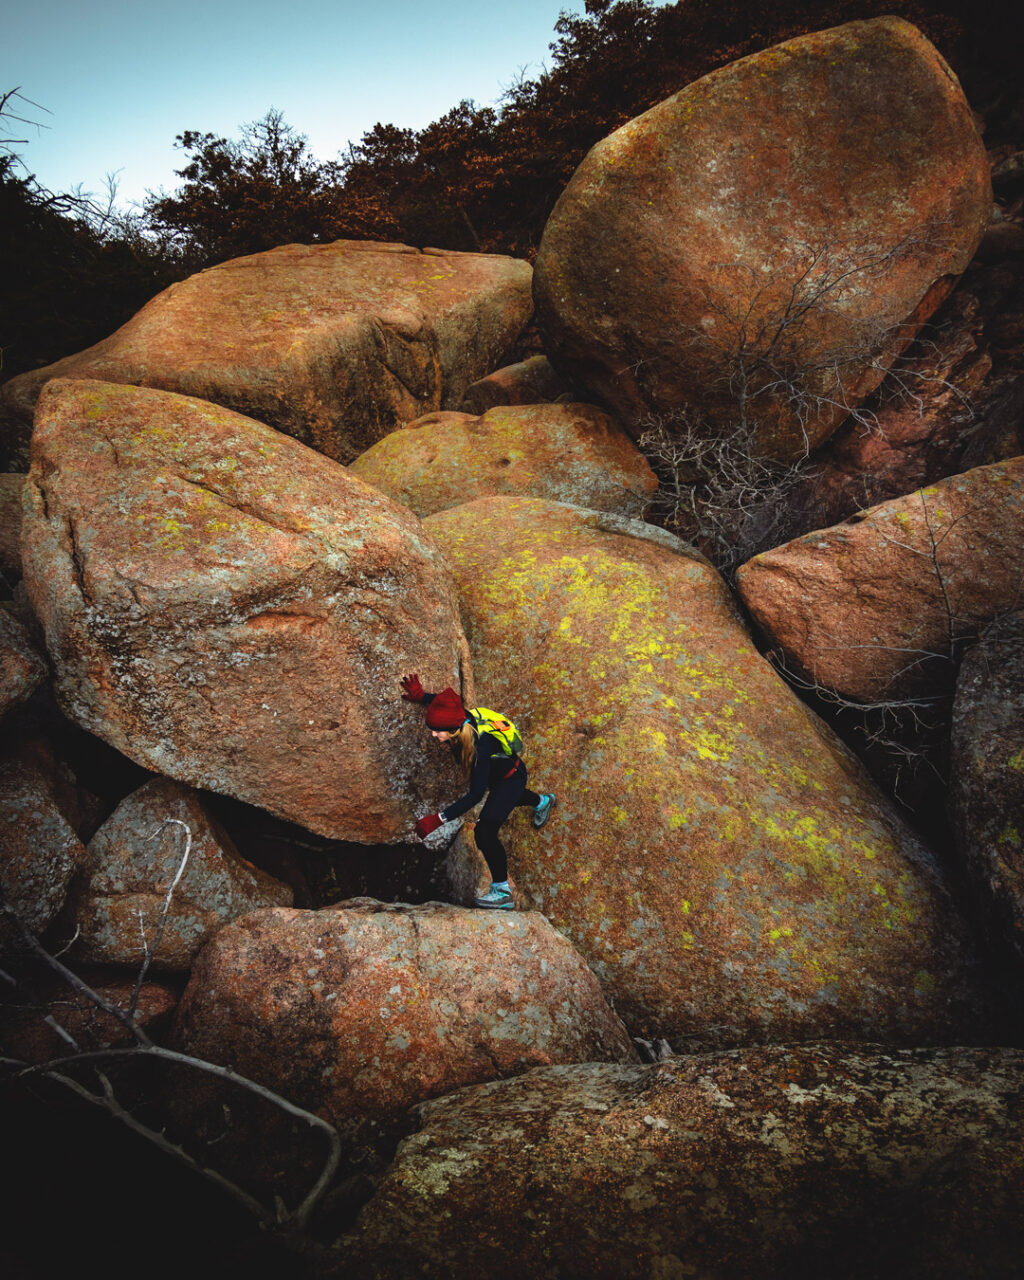 Woman hiker navigating massive rocks in the Valley of Boulders at Charon's Garden hiking trail, Wichita Mountains Wildlife Refuge.